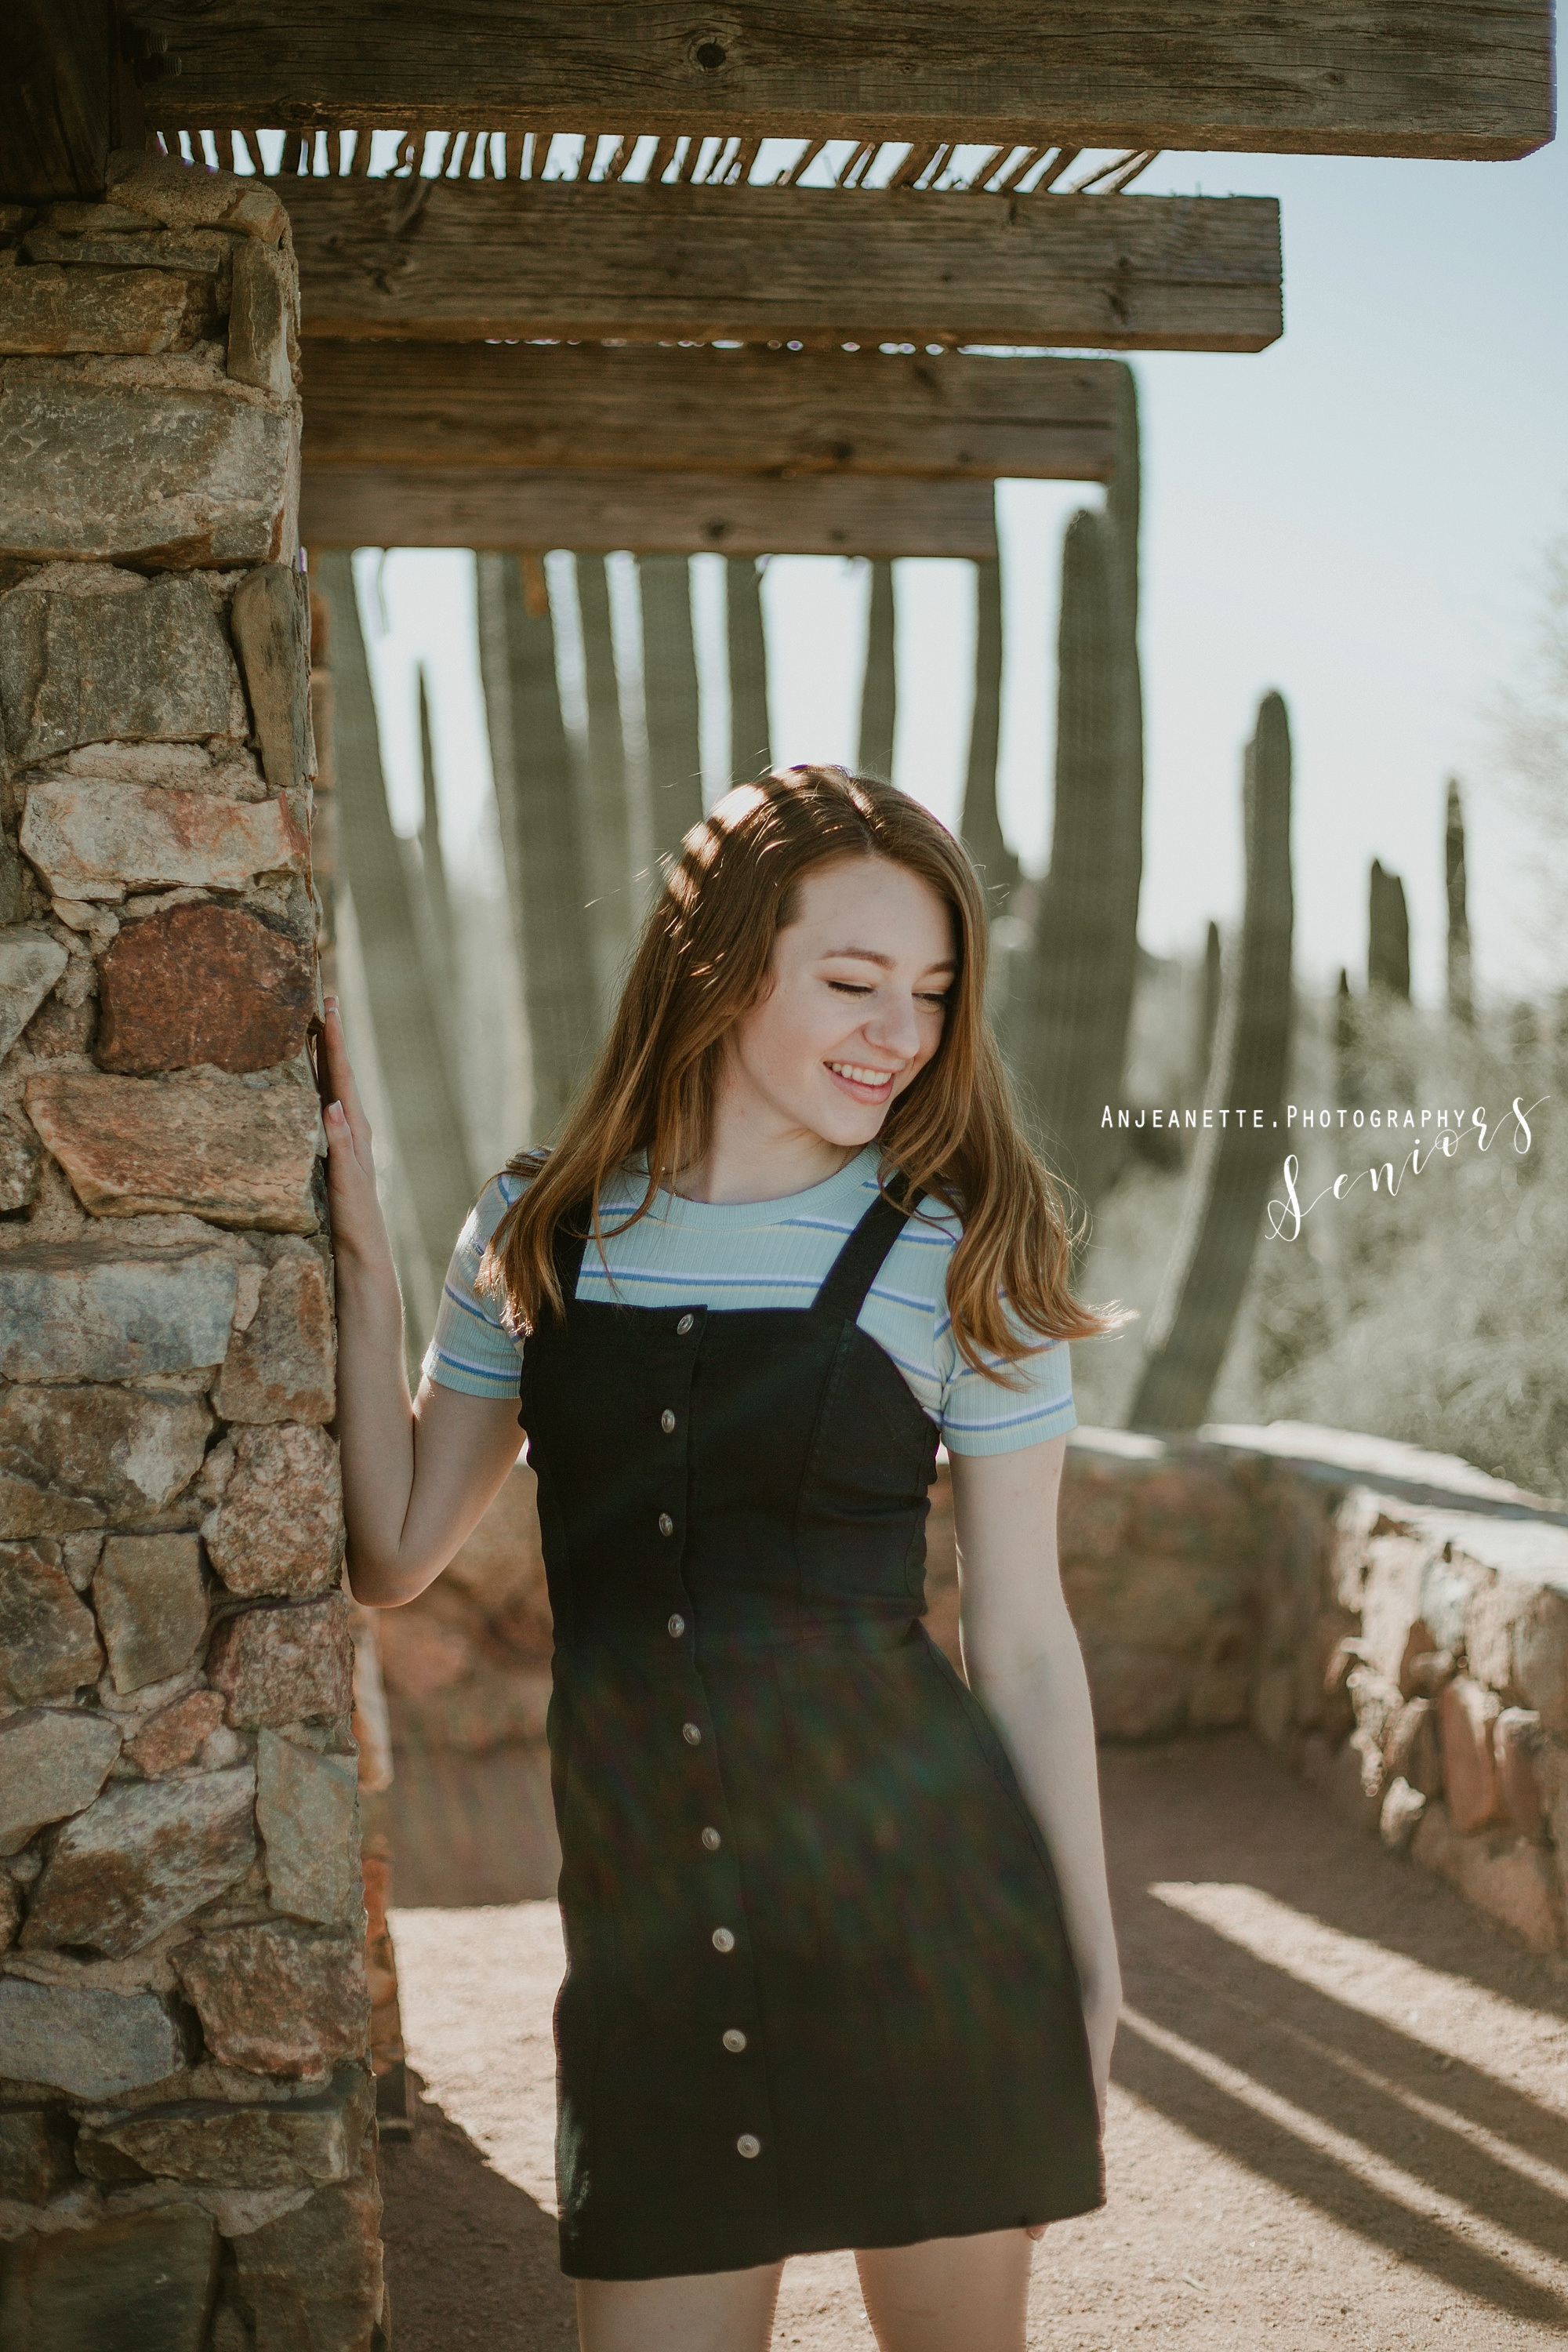 Places to take senior graduation pictures Sandra Day O'Connor High School Phoenix Peoria Az Anthem high school portraits grad photographer Anjeanette Photography Phx Arizona